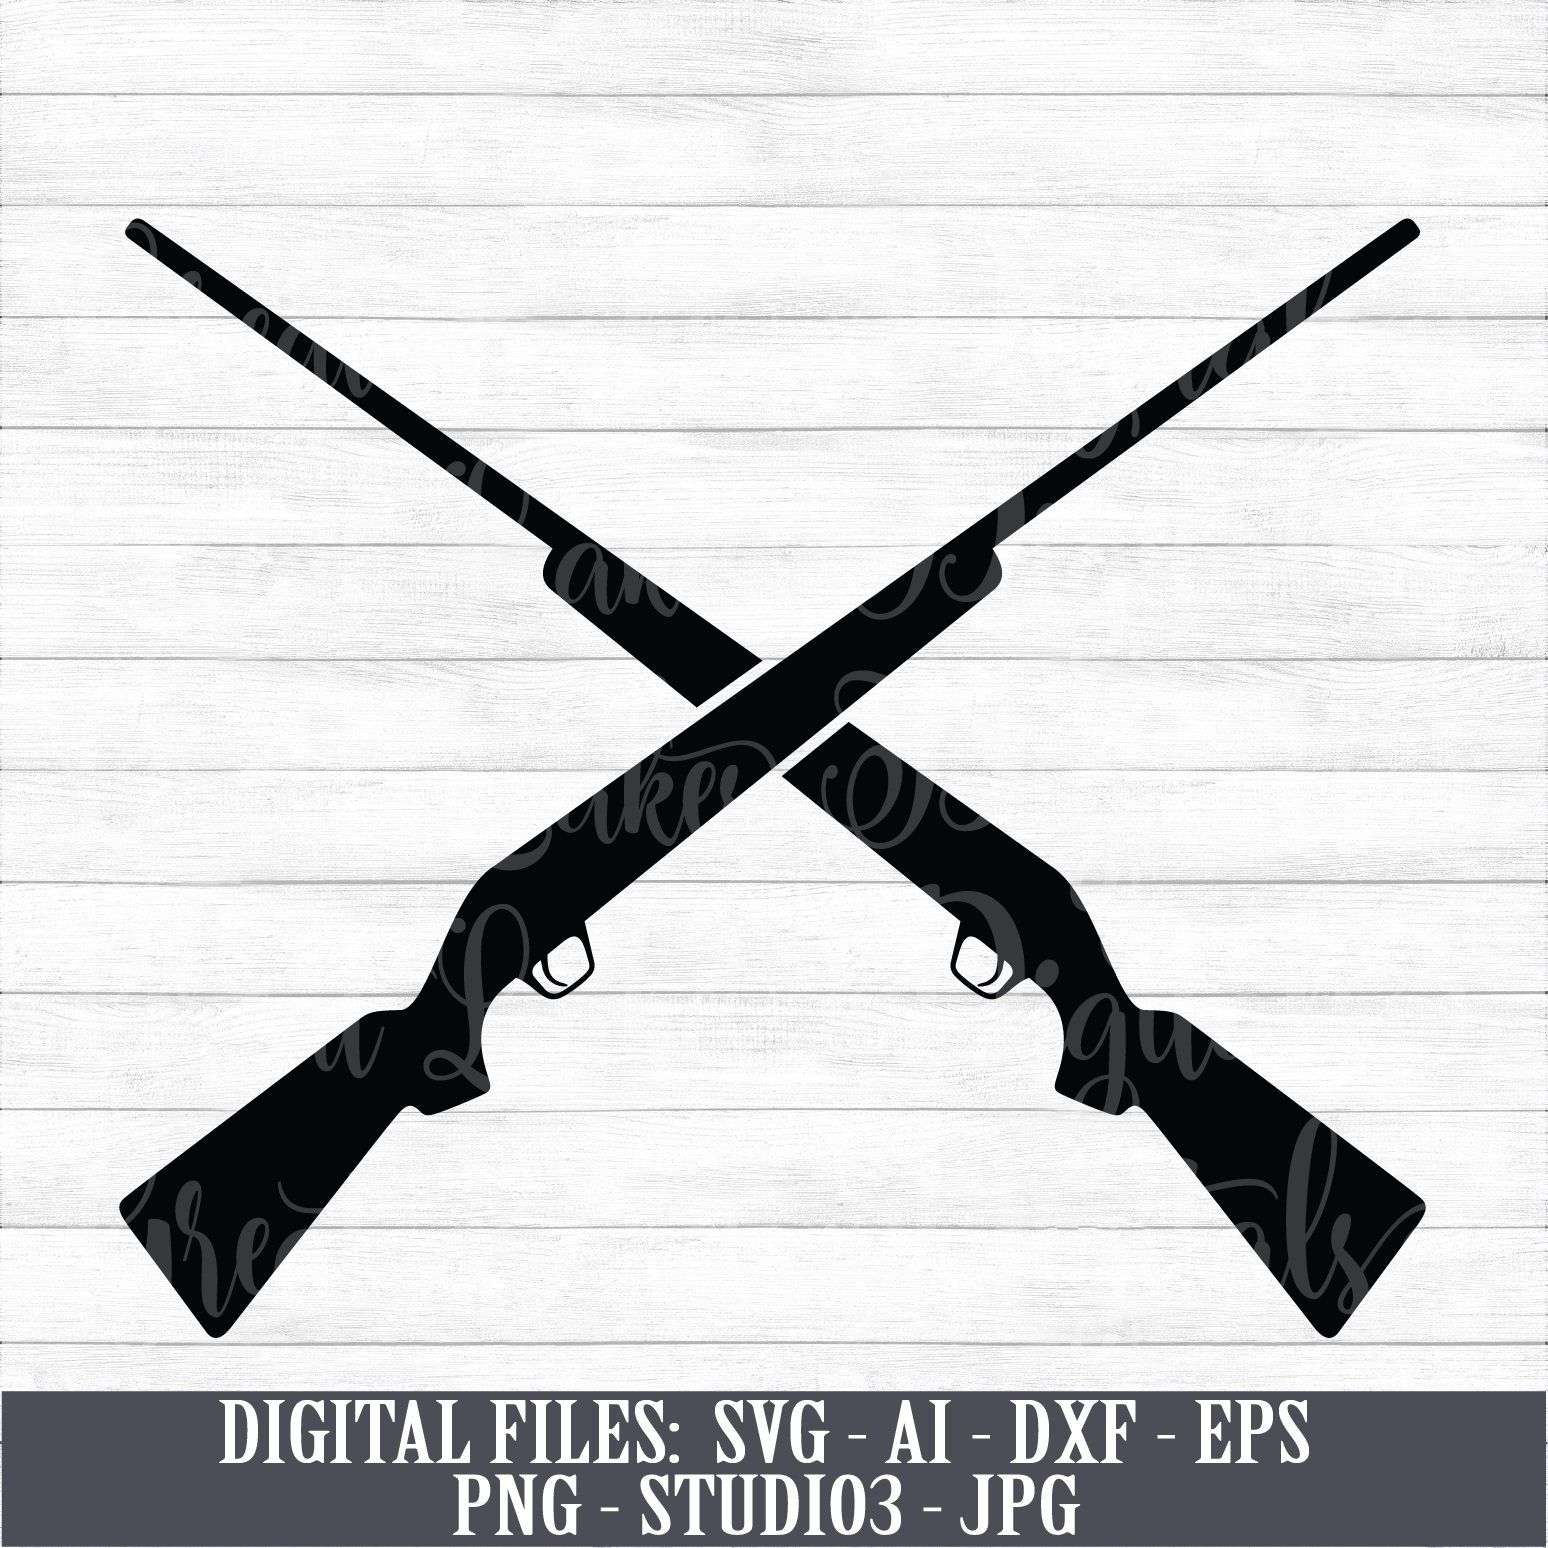 Crossed Hunting Rifles Digital Download Instant Download Svg Ai Dxf Eps Png Studio3 And Jpg Files Included Digital Hunting Rifles Digital Download